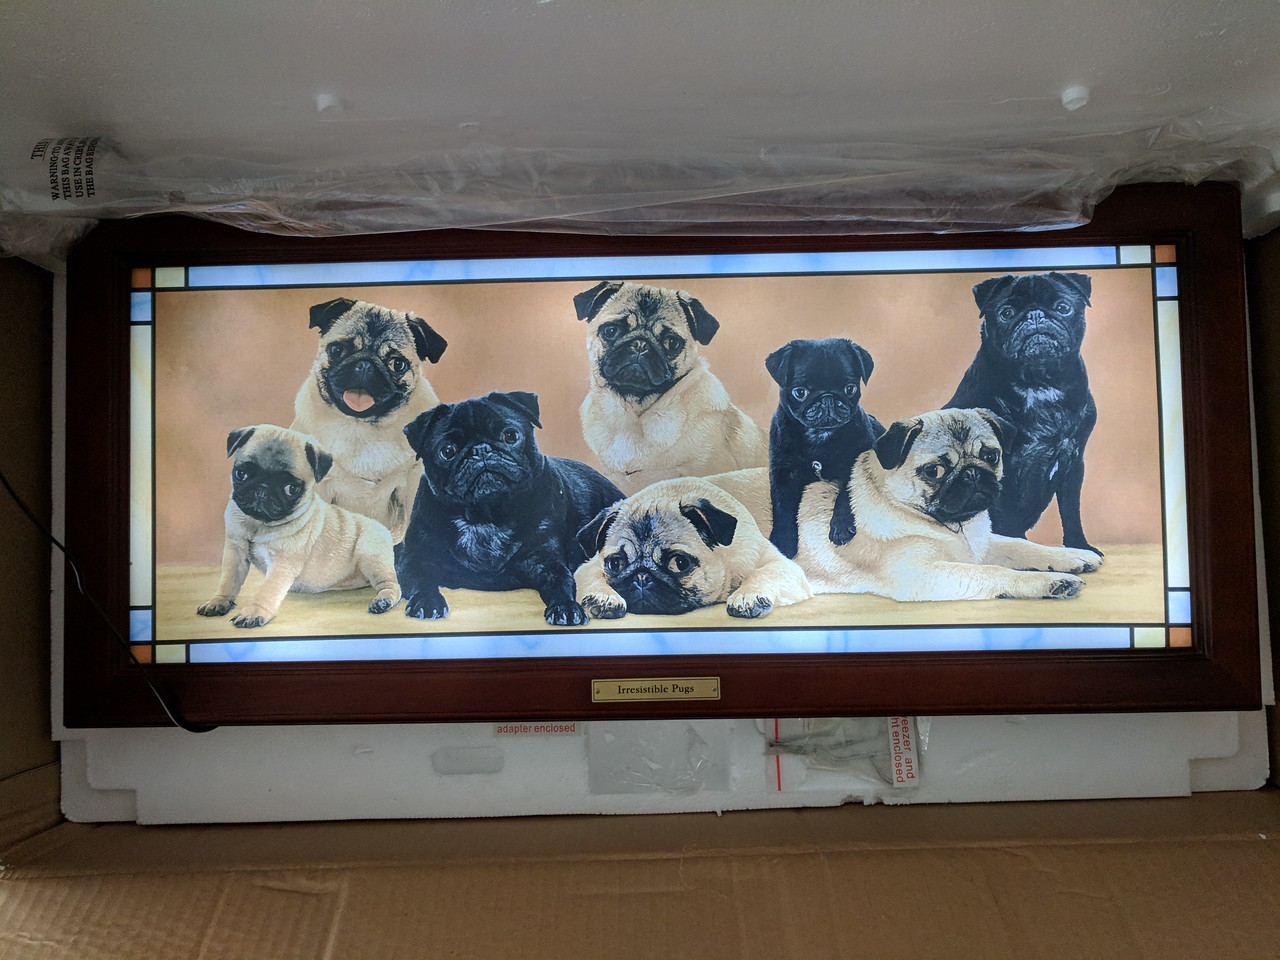 Irresistible Pugs - Light Up Wall Hanging